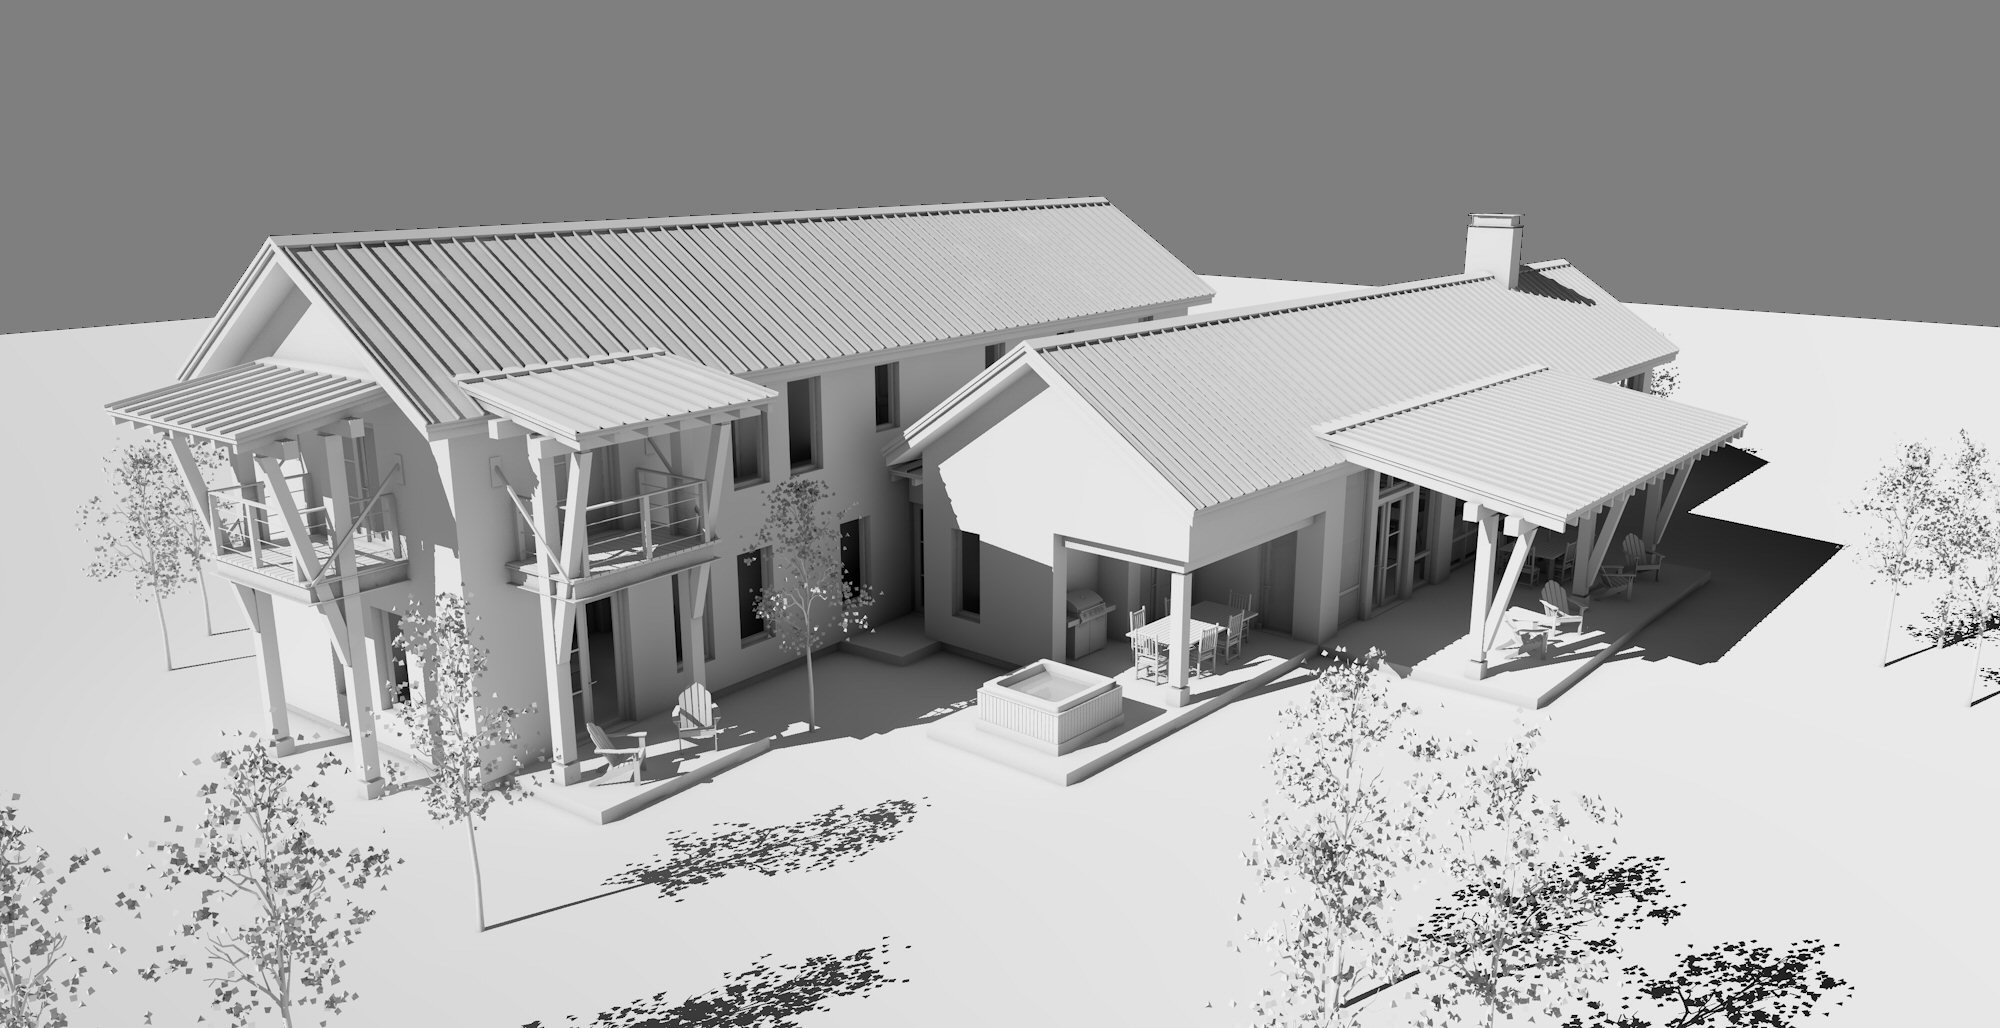 plan-west-design-firm-_-projects-in-process-614